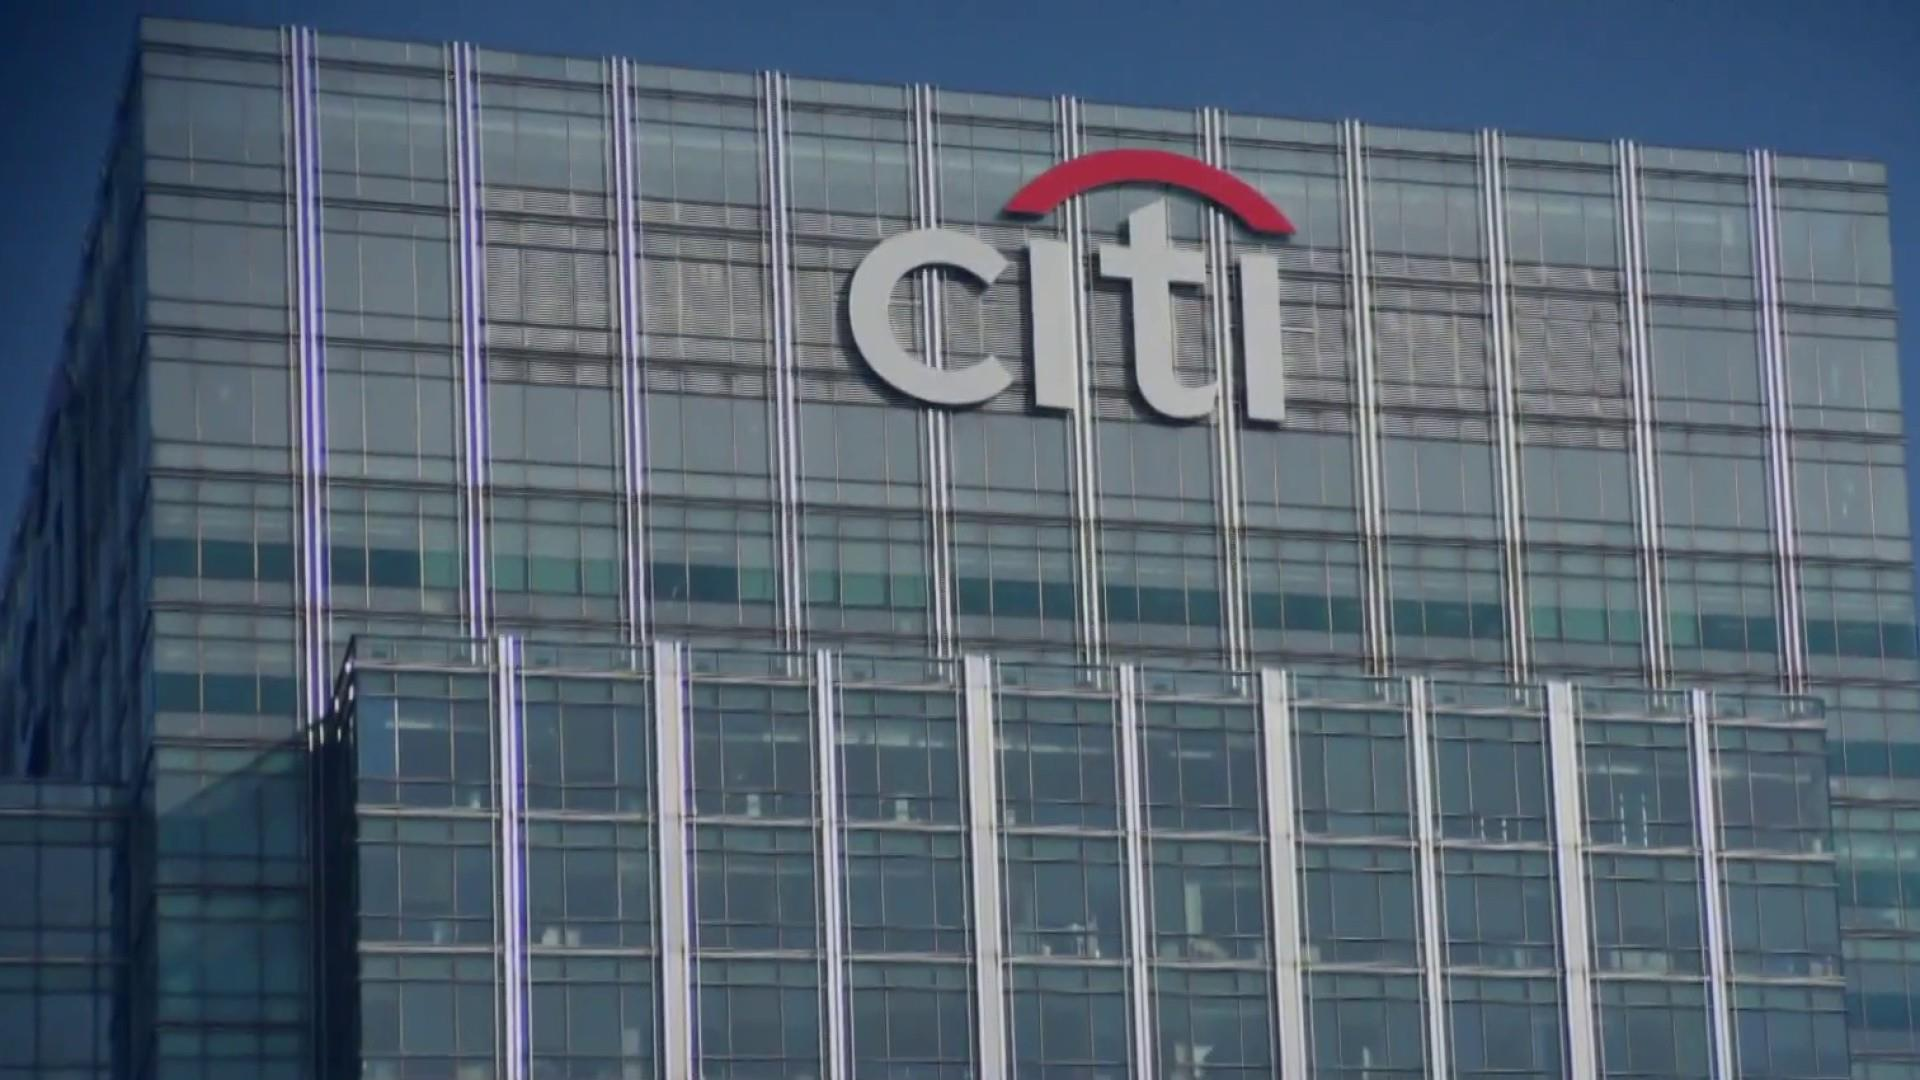 Citigroup Refunding 330 Million To Customers After Overcharging